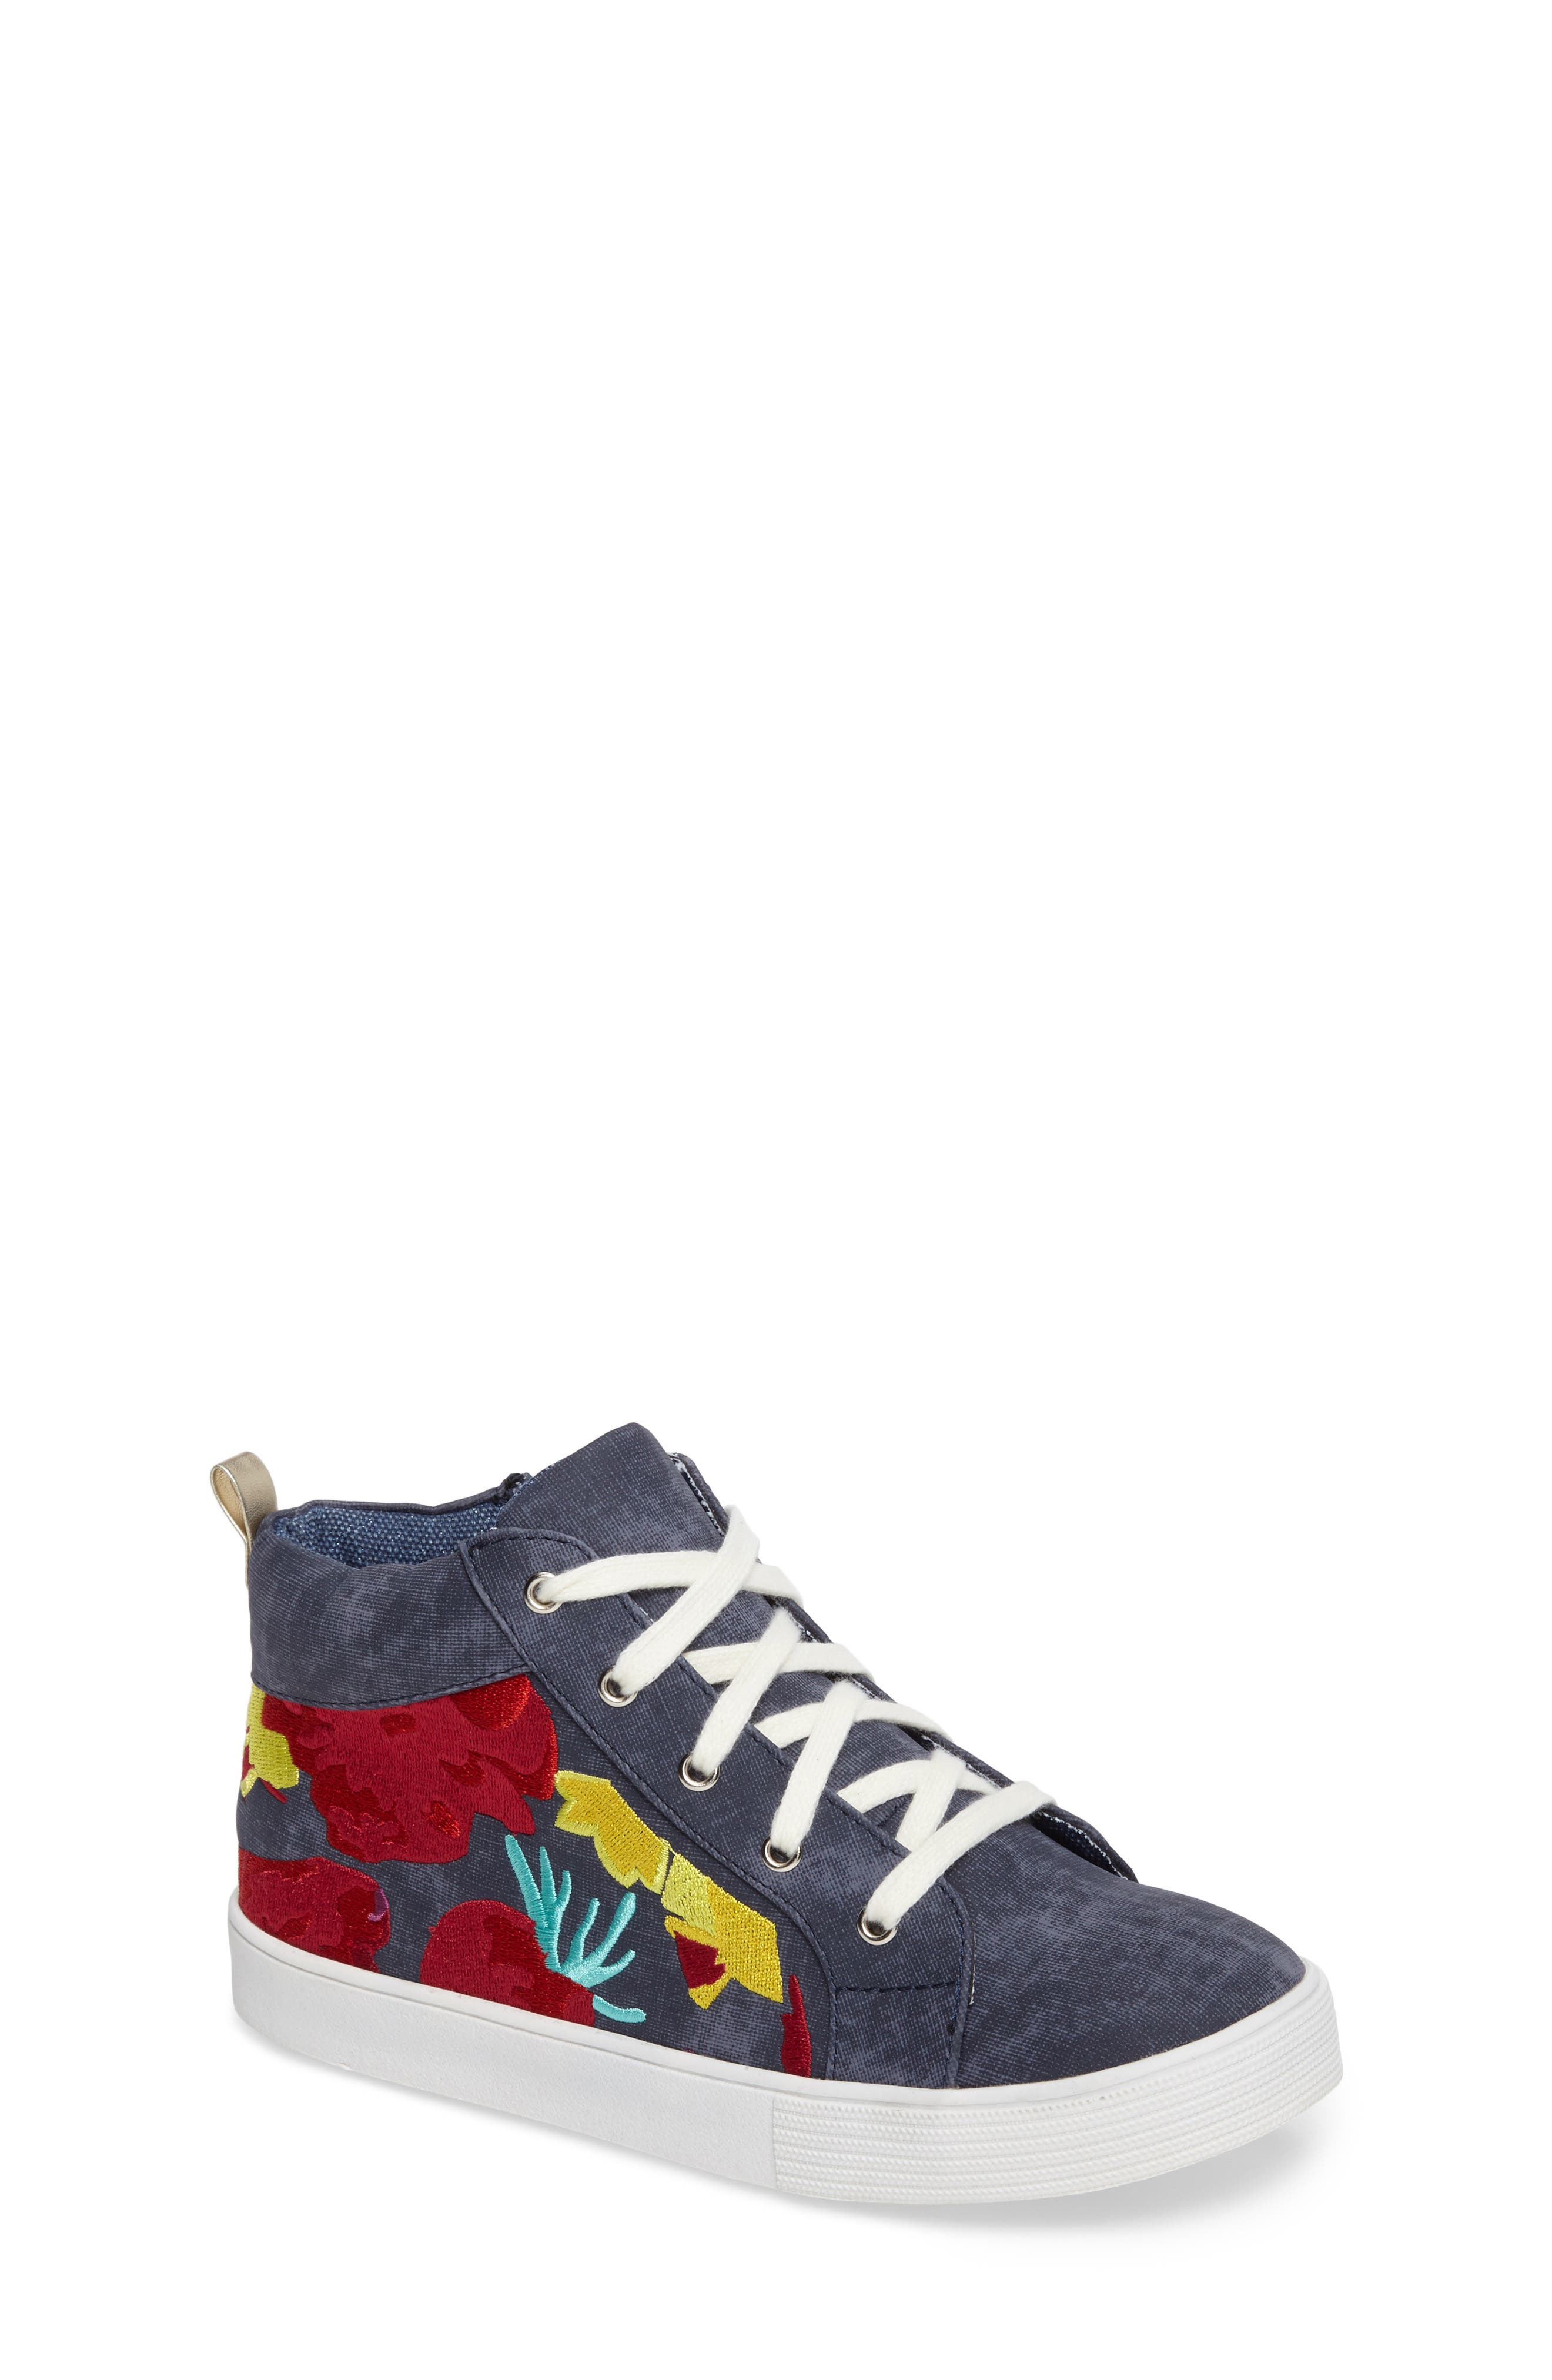 Kenneth Cole New York Kam Embroidered High Top Sneaker (Toddler, Little Kid & Big Kid)